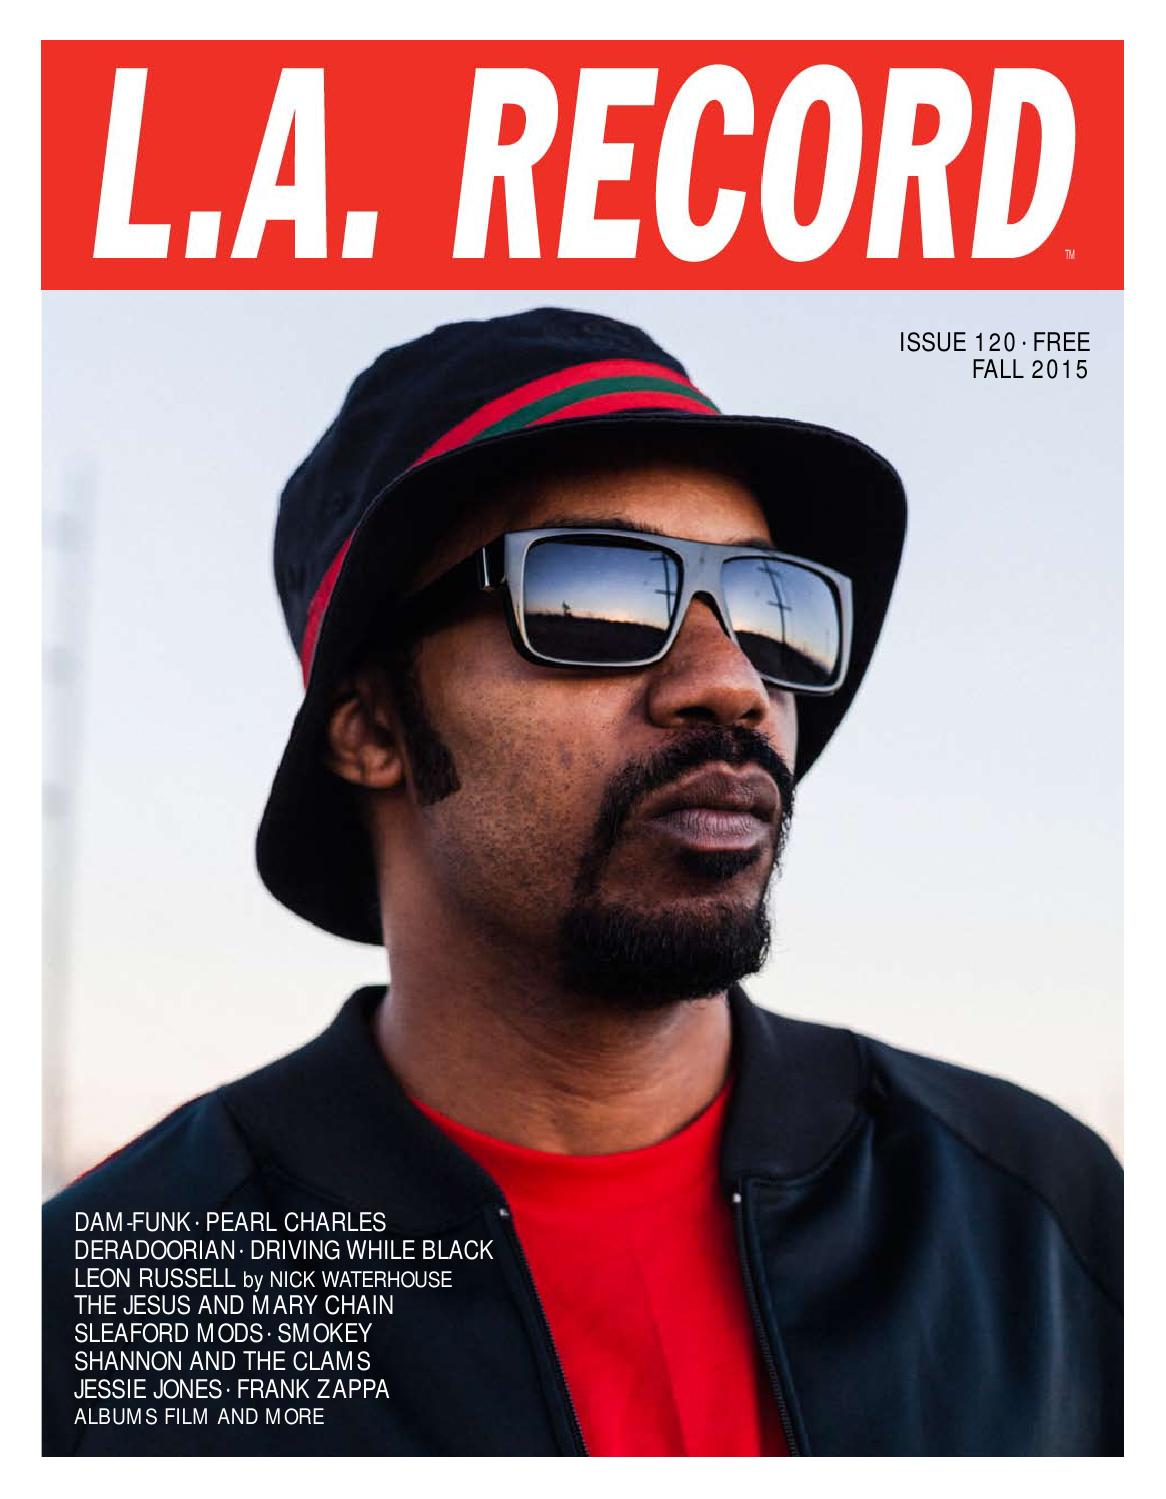 050f9b848d1 L.A. RECORD ISSUE 120 by L.A. RECORD - issuu